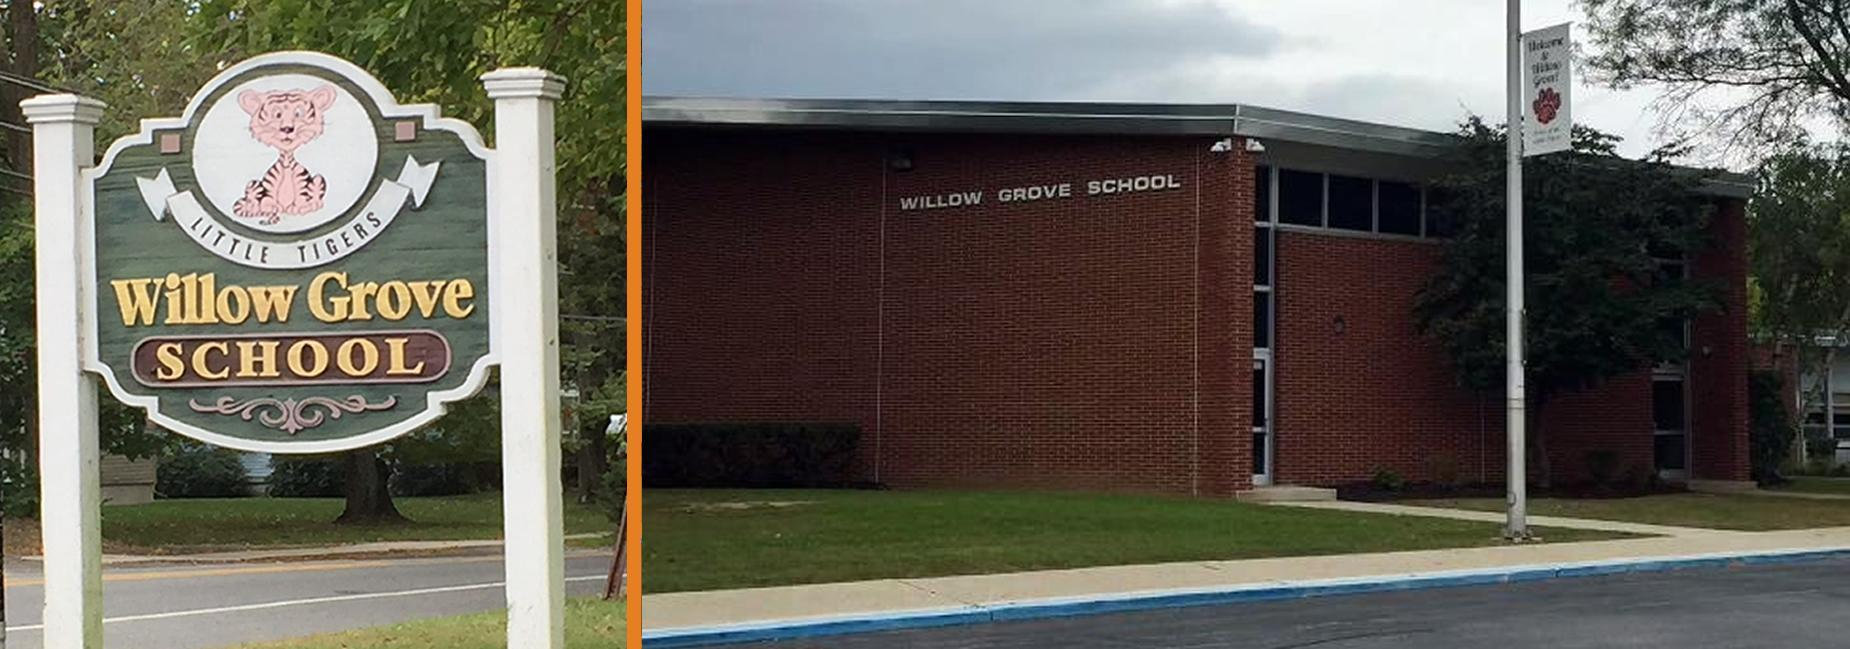 Willow Grove Street Sign/Willow Grove School Building